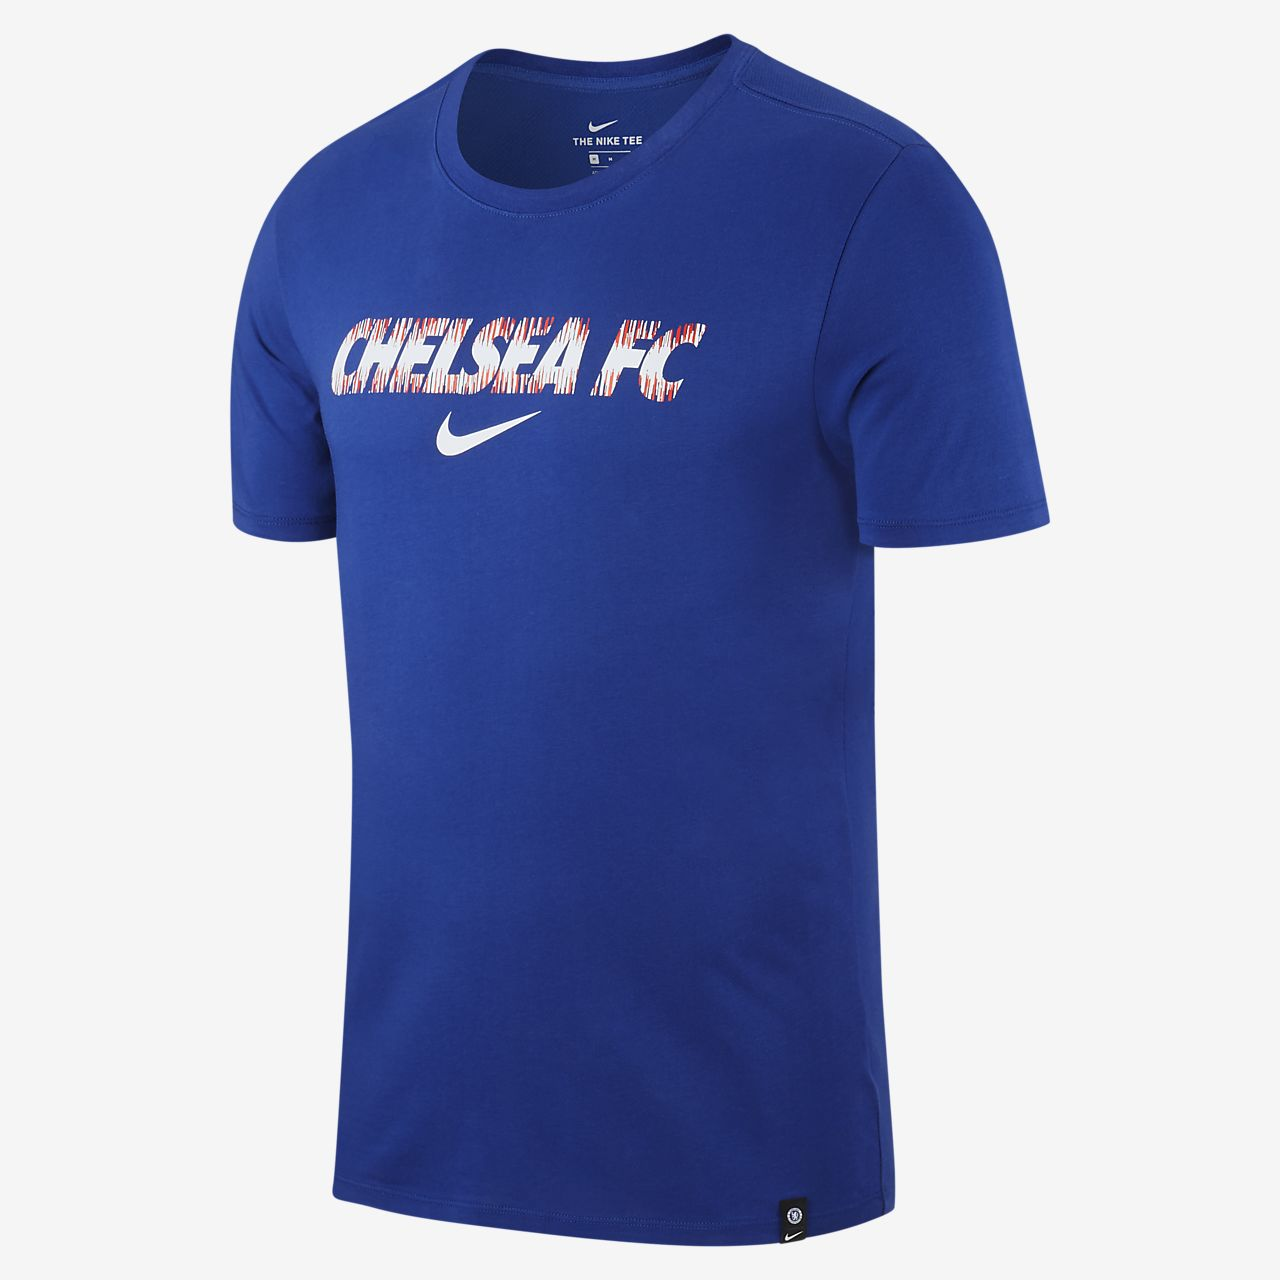 Chelsea FC Dri-FIT Men's Football T-Shirt